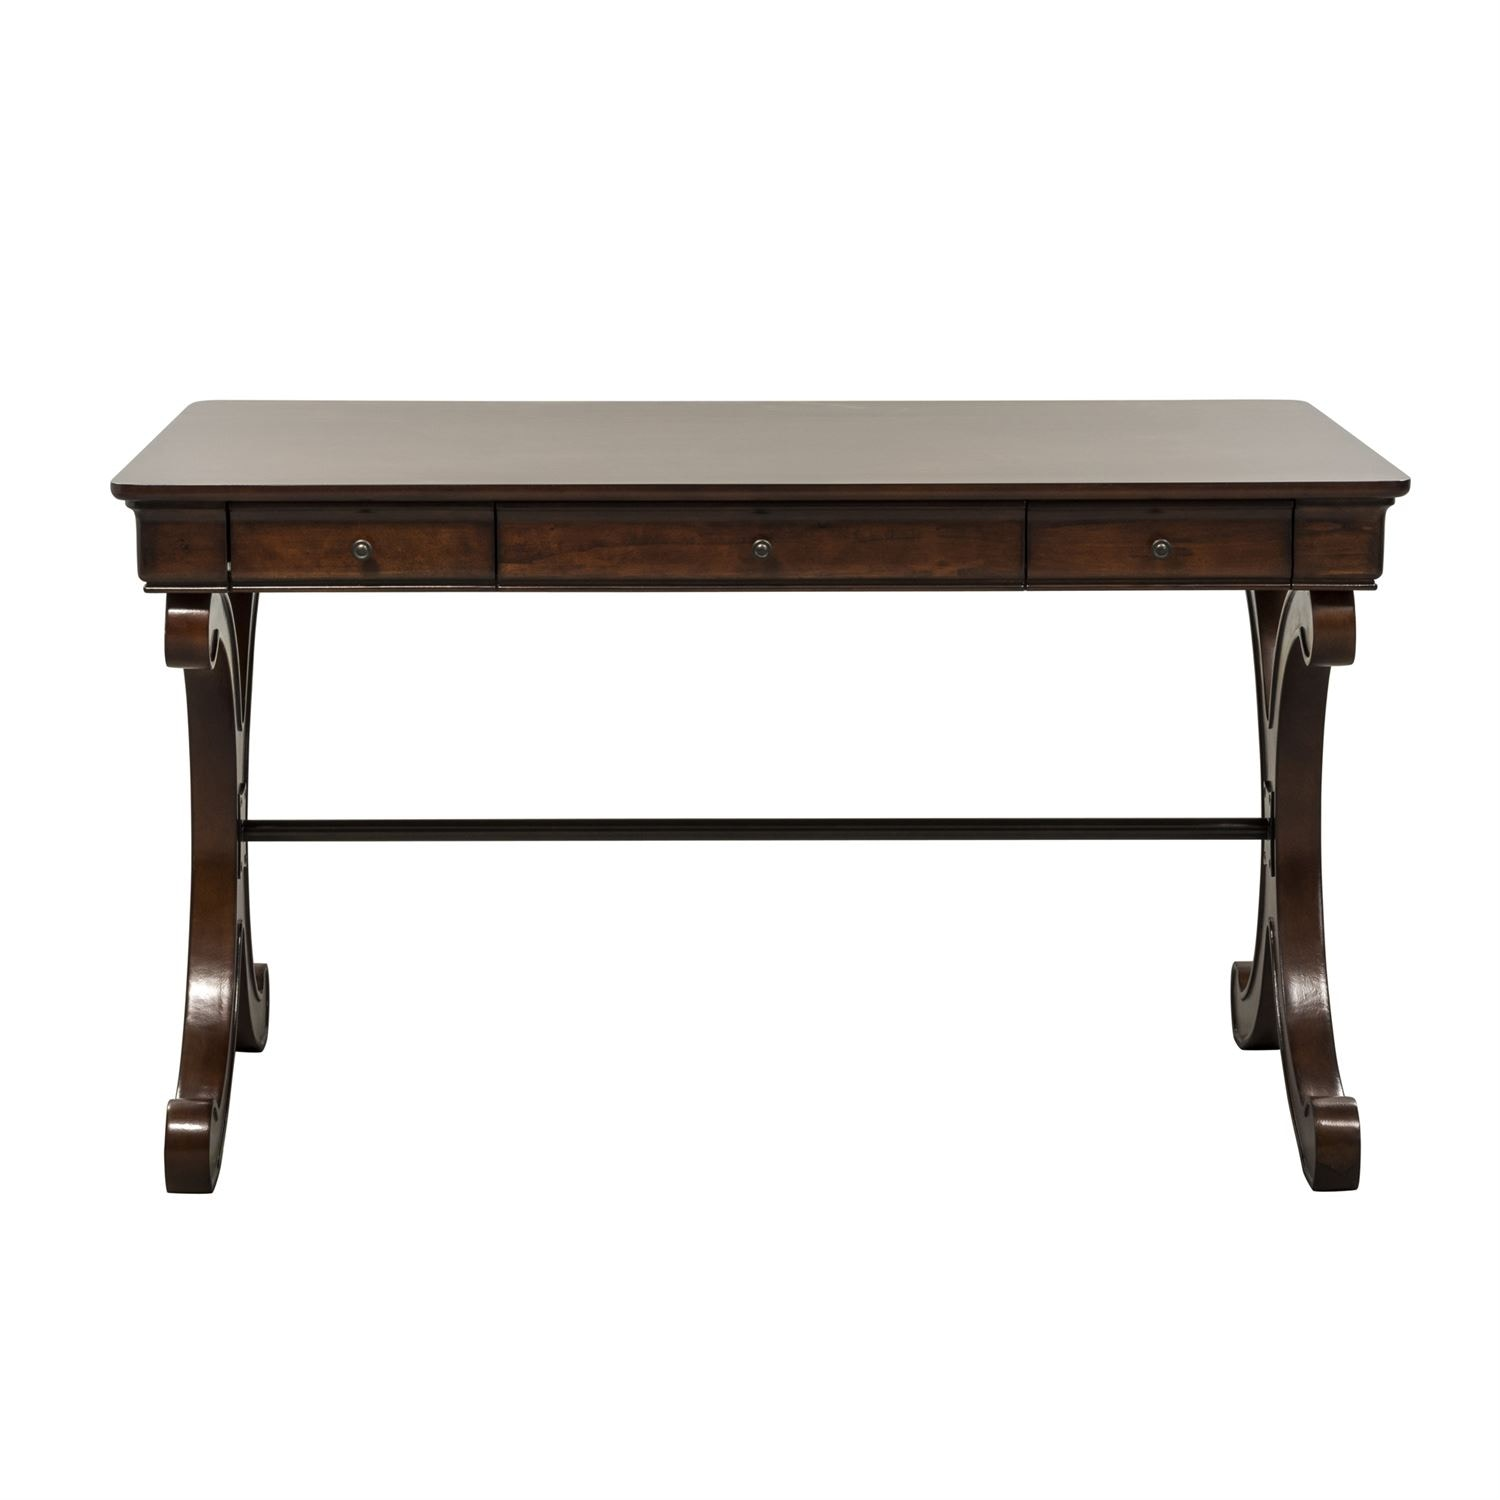 Liberty Furniture Home Office Writing Desk 378 HO107 At Smith Village Home  Furniture